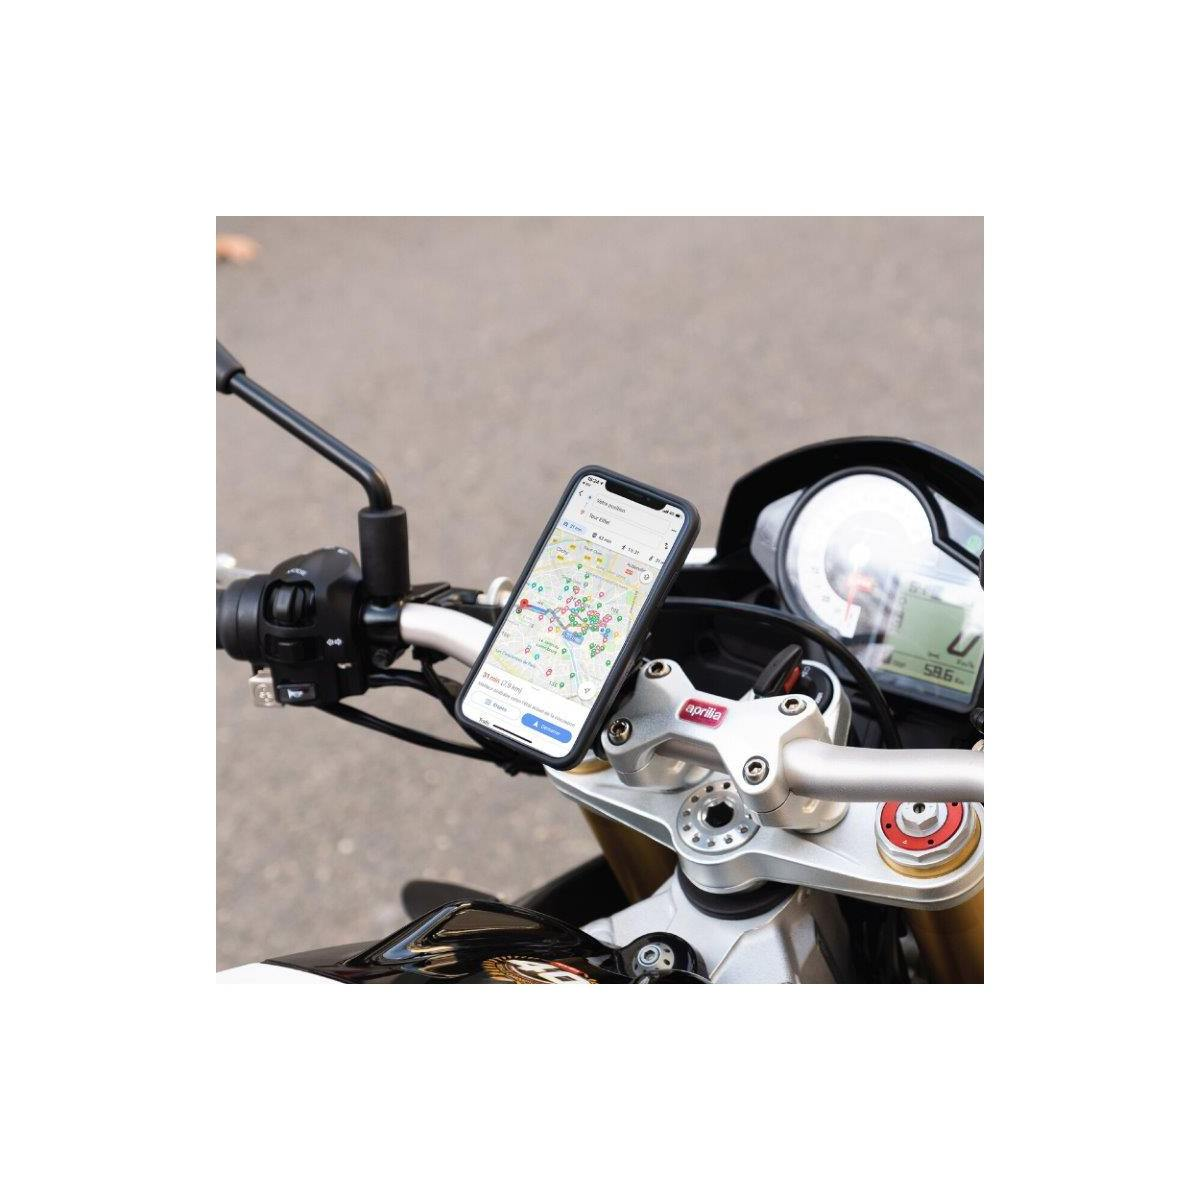 FitClic Neo Motorcycle kit for Samsung Galaxy Note 10 - BuyBits Ltd UK